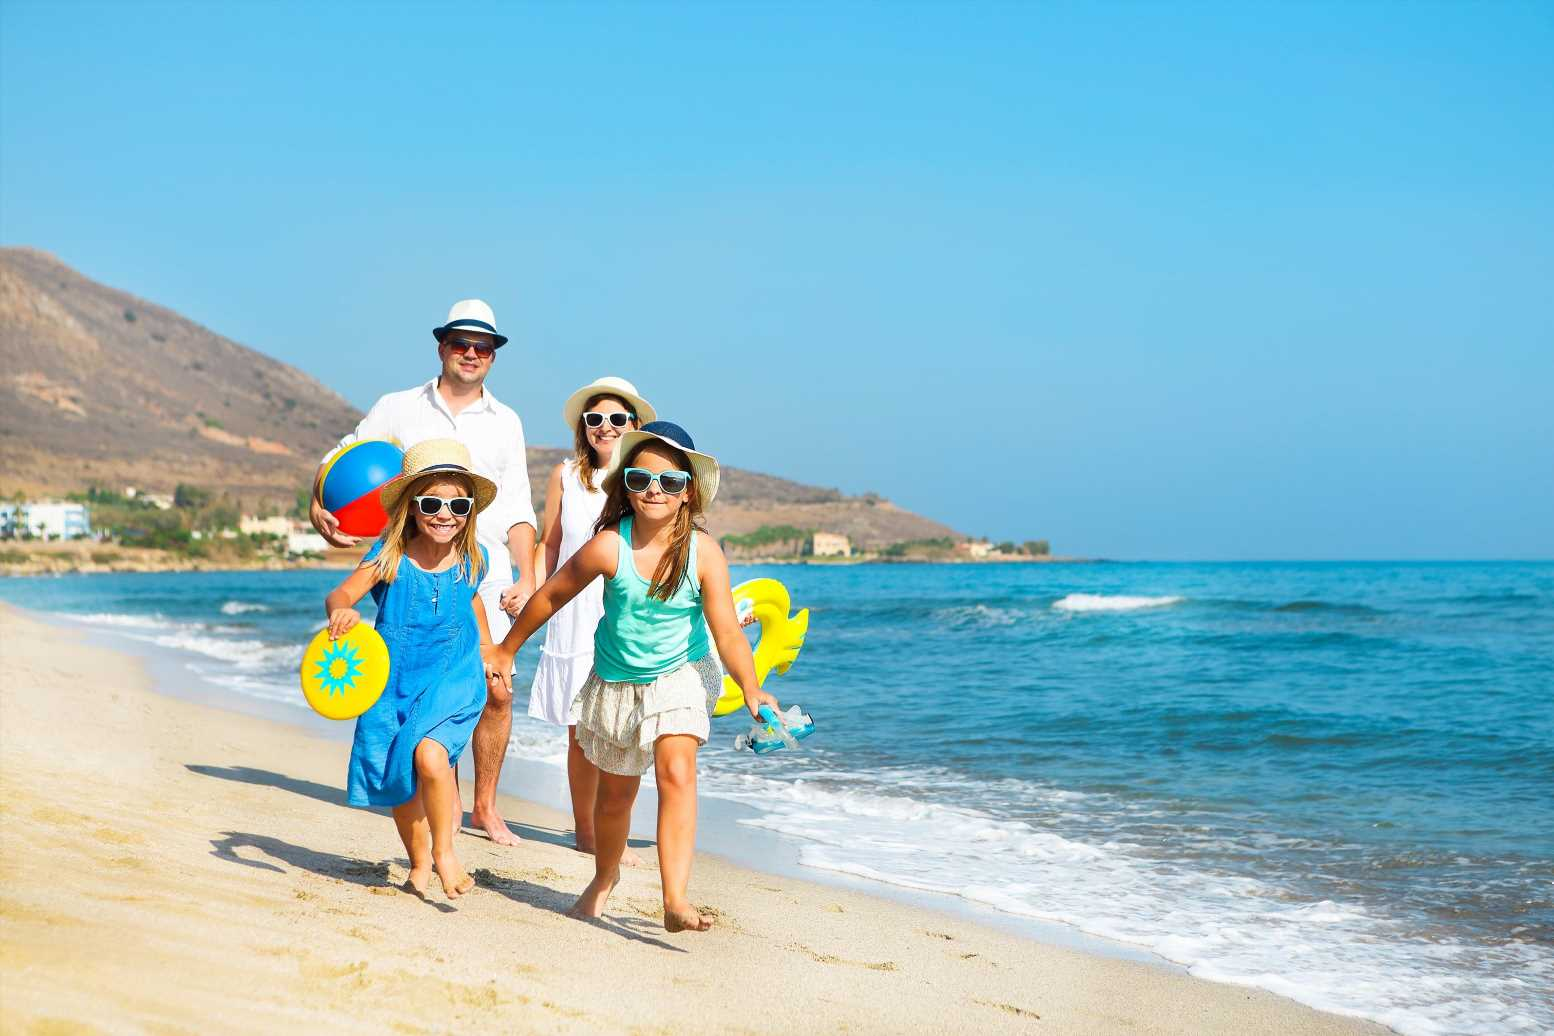 Amber list travel insurance: Am I covered? Rights explained